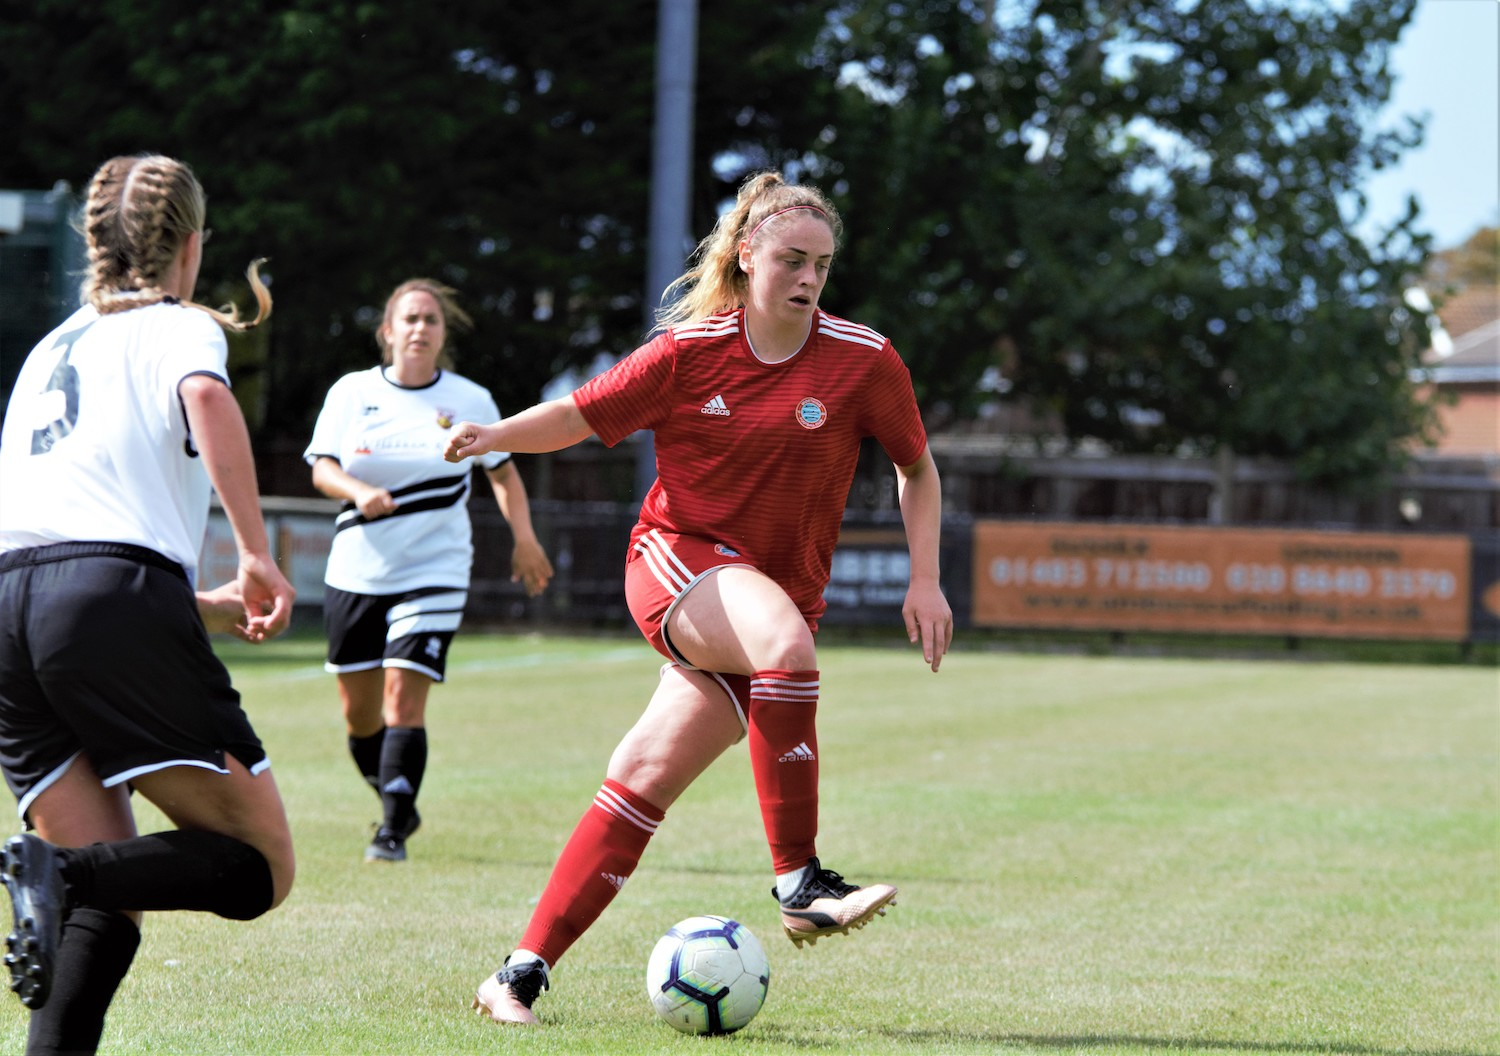 Read the full article - Herne Bay hit for seven as Worthing earn opening day win